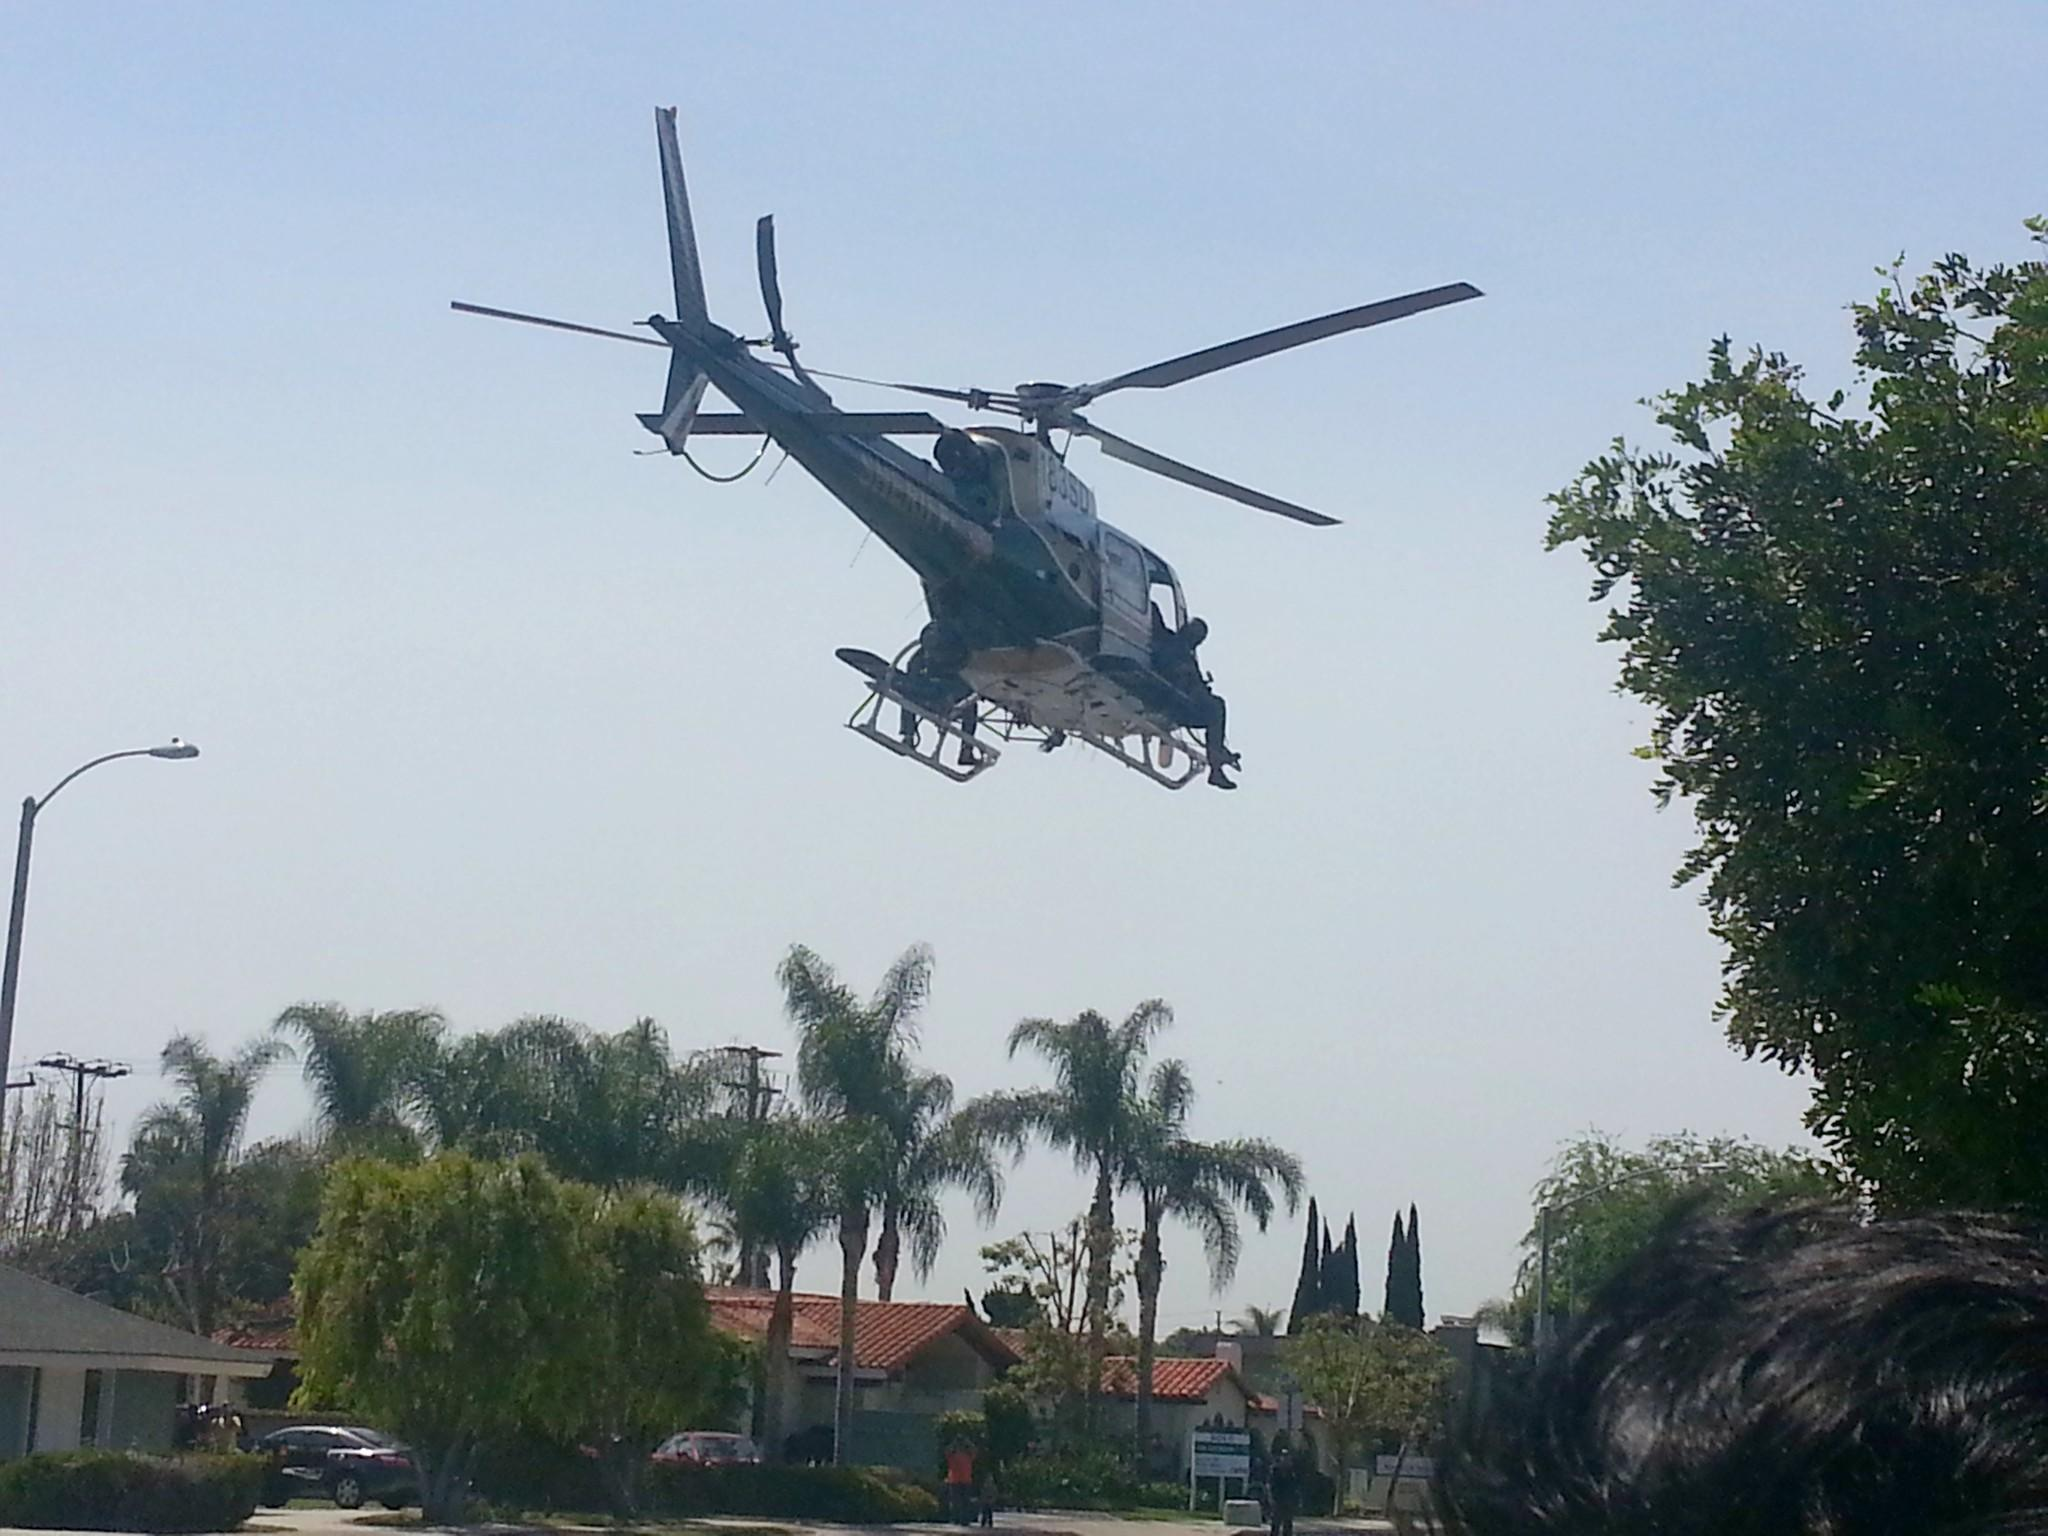 A helicopter is used amid a SWAT response to the armed gunman search in Tustin on Thursday.